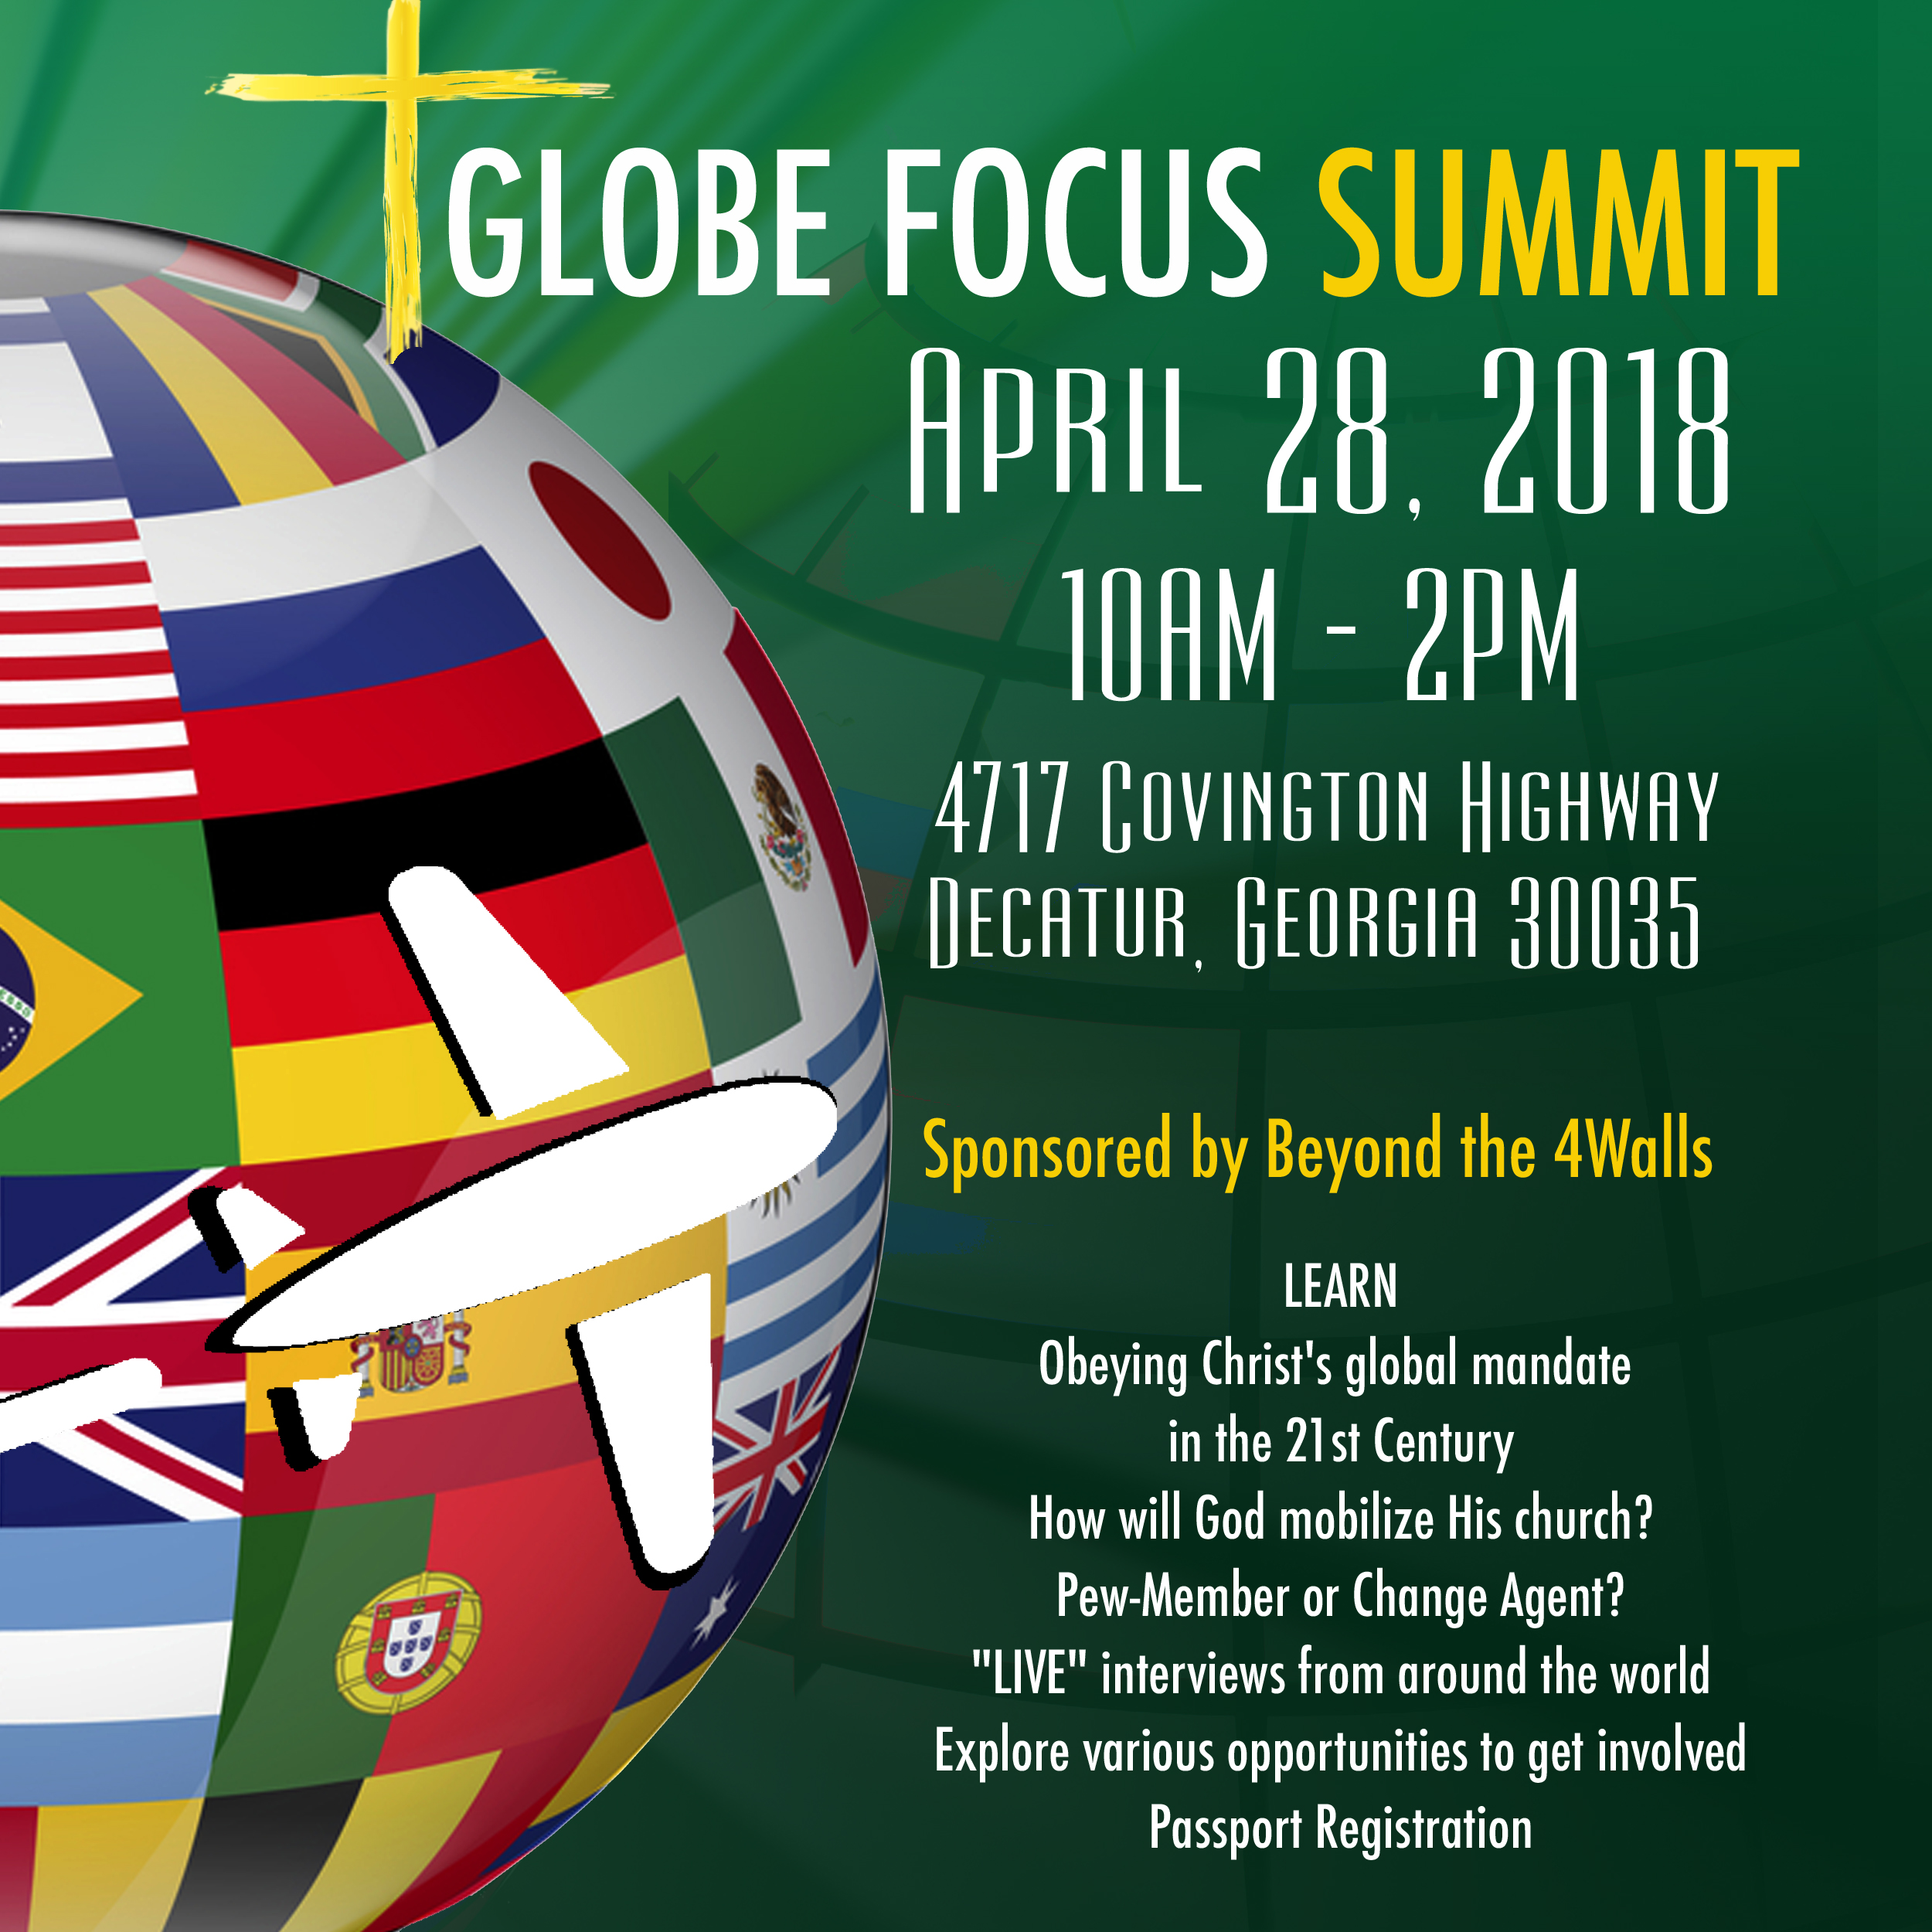 GLOBAL FOCUS SUMMIT